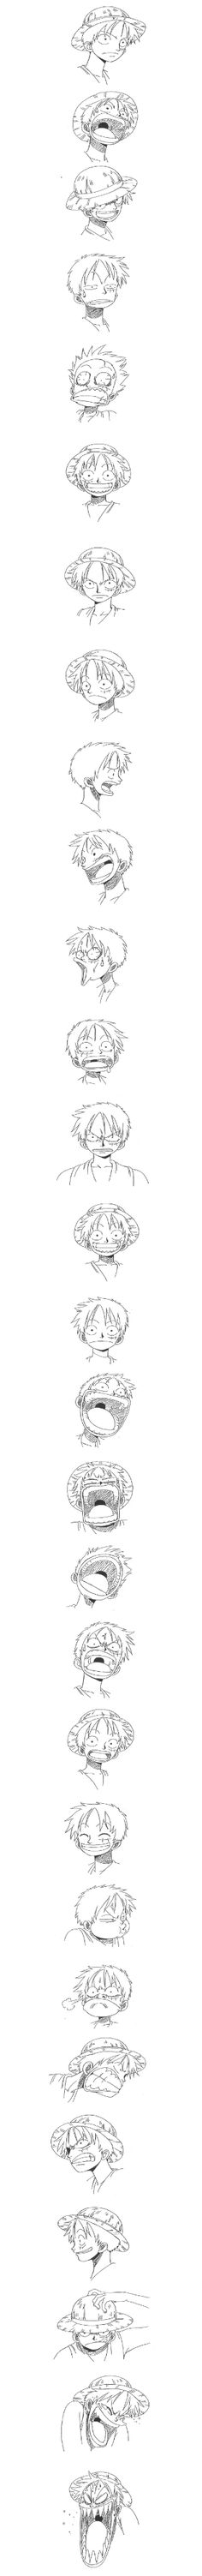 """Monkey D. Luffy"" by 尾田 栄一郎 Eiichiro Oda* One Piece ワンピース 